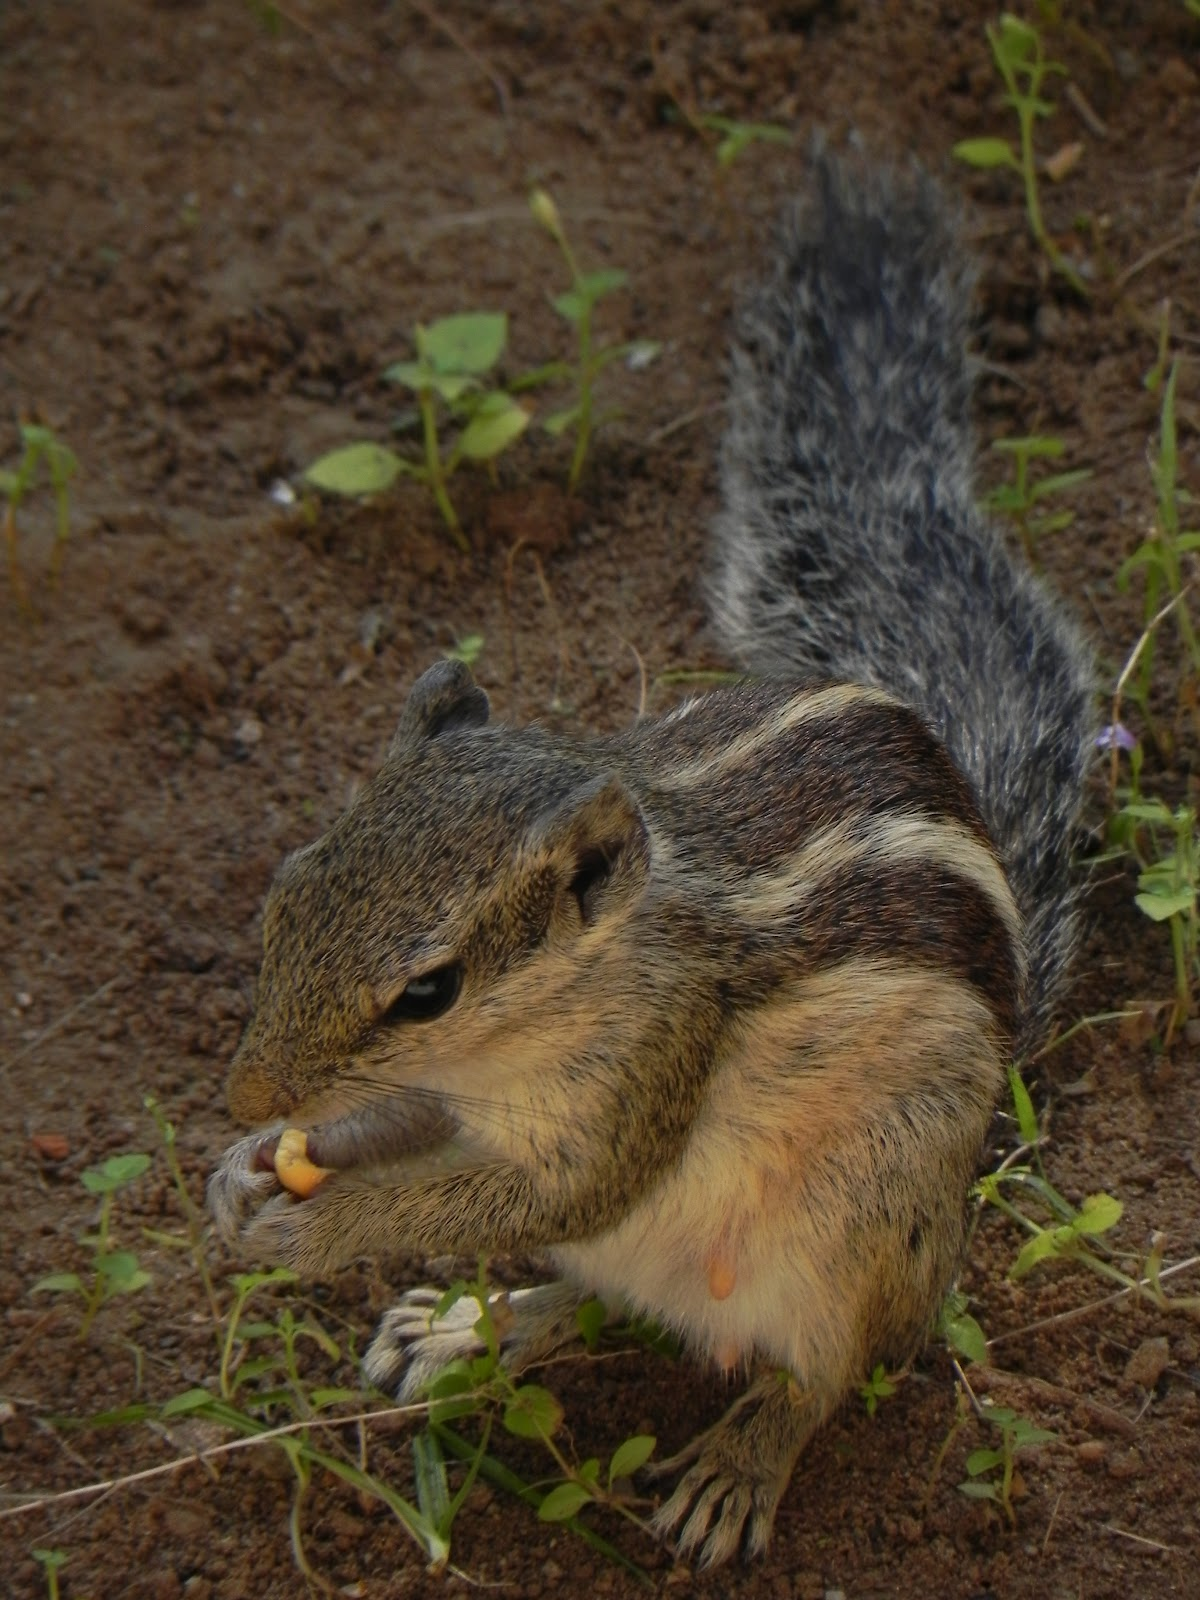 squirrel hindu personals Today's news headlines, breaking news & latest news from india and world, news from politics, sports, business, arts and entertainment.